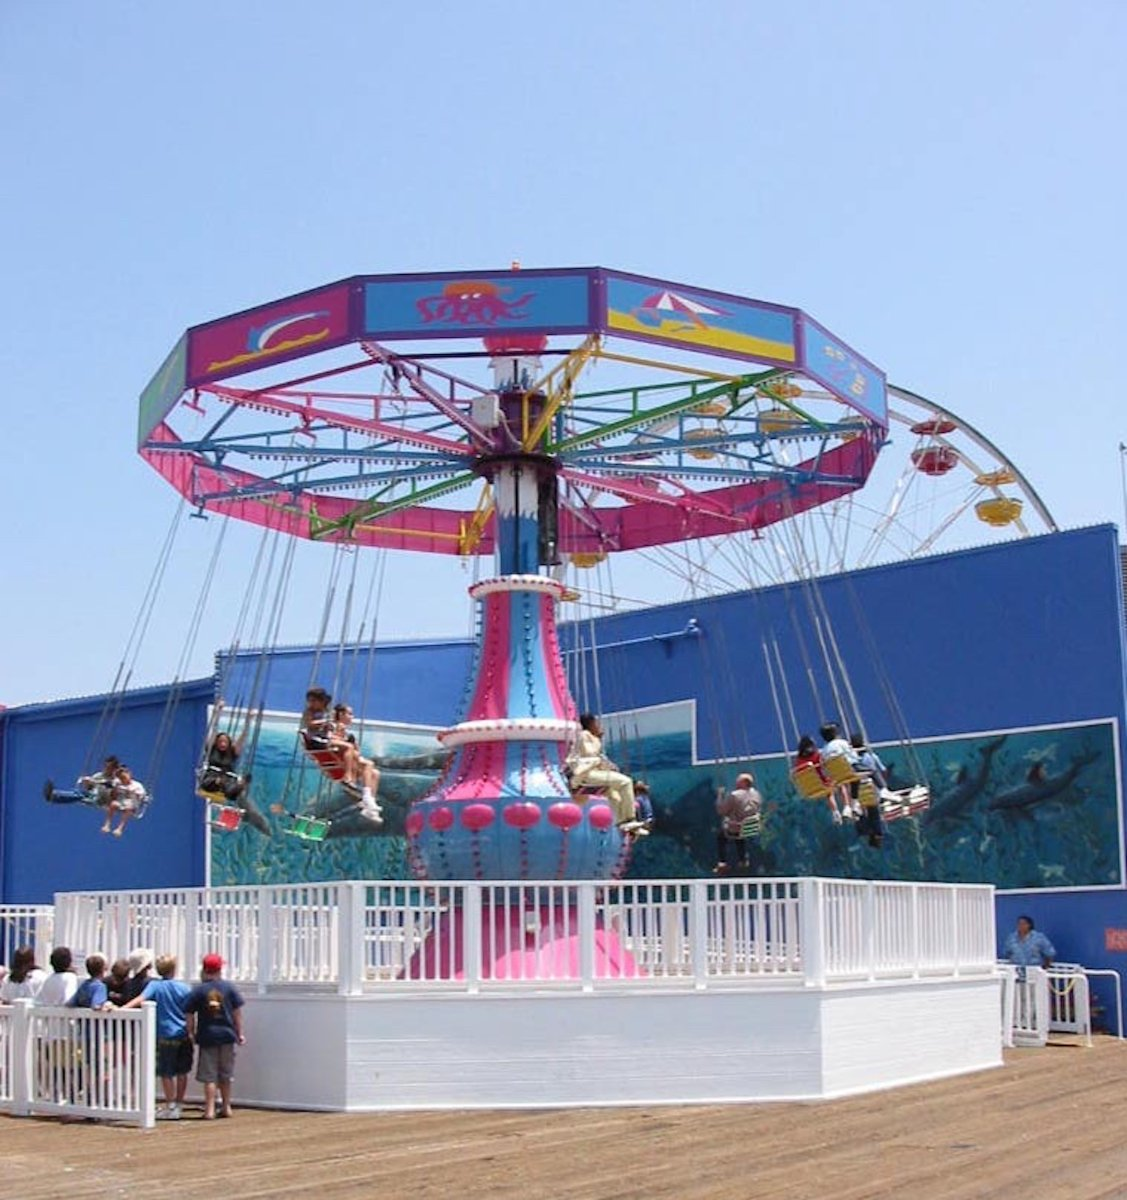 Counting down to our 25th anniversary, 2001 - In a nod to the Santa Monica Pier's storied history as a pleasure pier, Pacific Park introduced The La Monica Swing ride – reminiscent of the family swing ride on the Pier in the early 1930s. https://t.co/Kbeao52wX9 https://t.co/gKTV0W6q8y